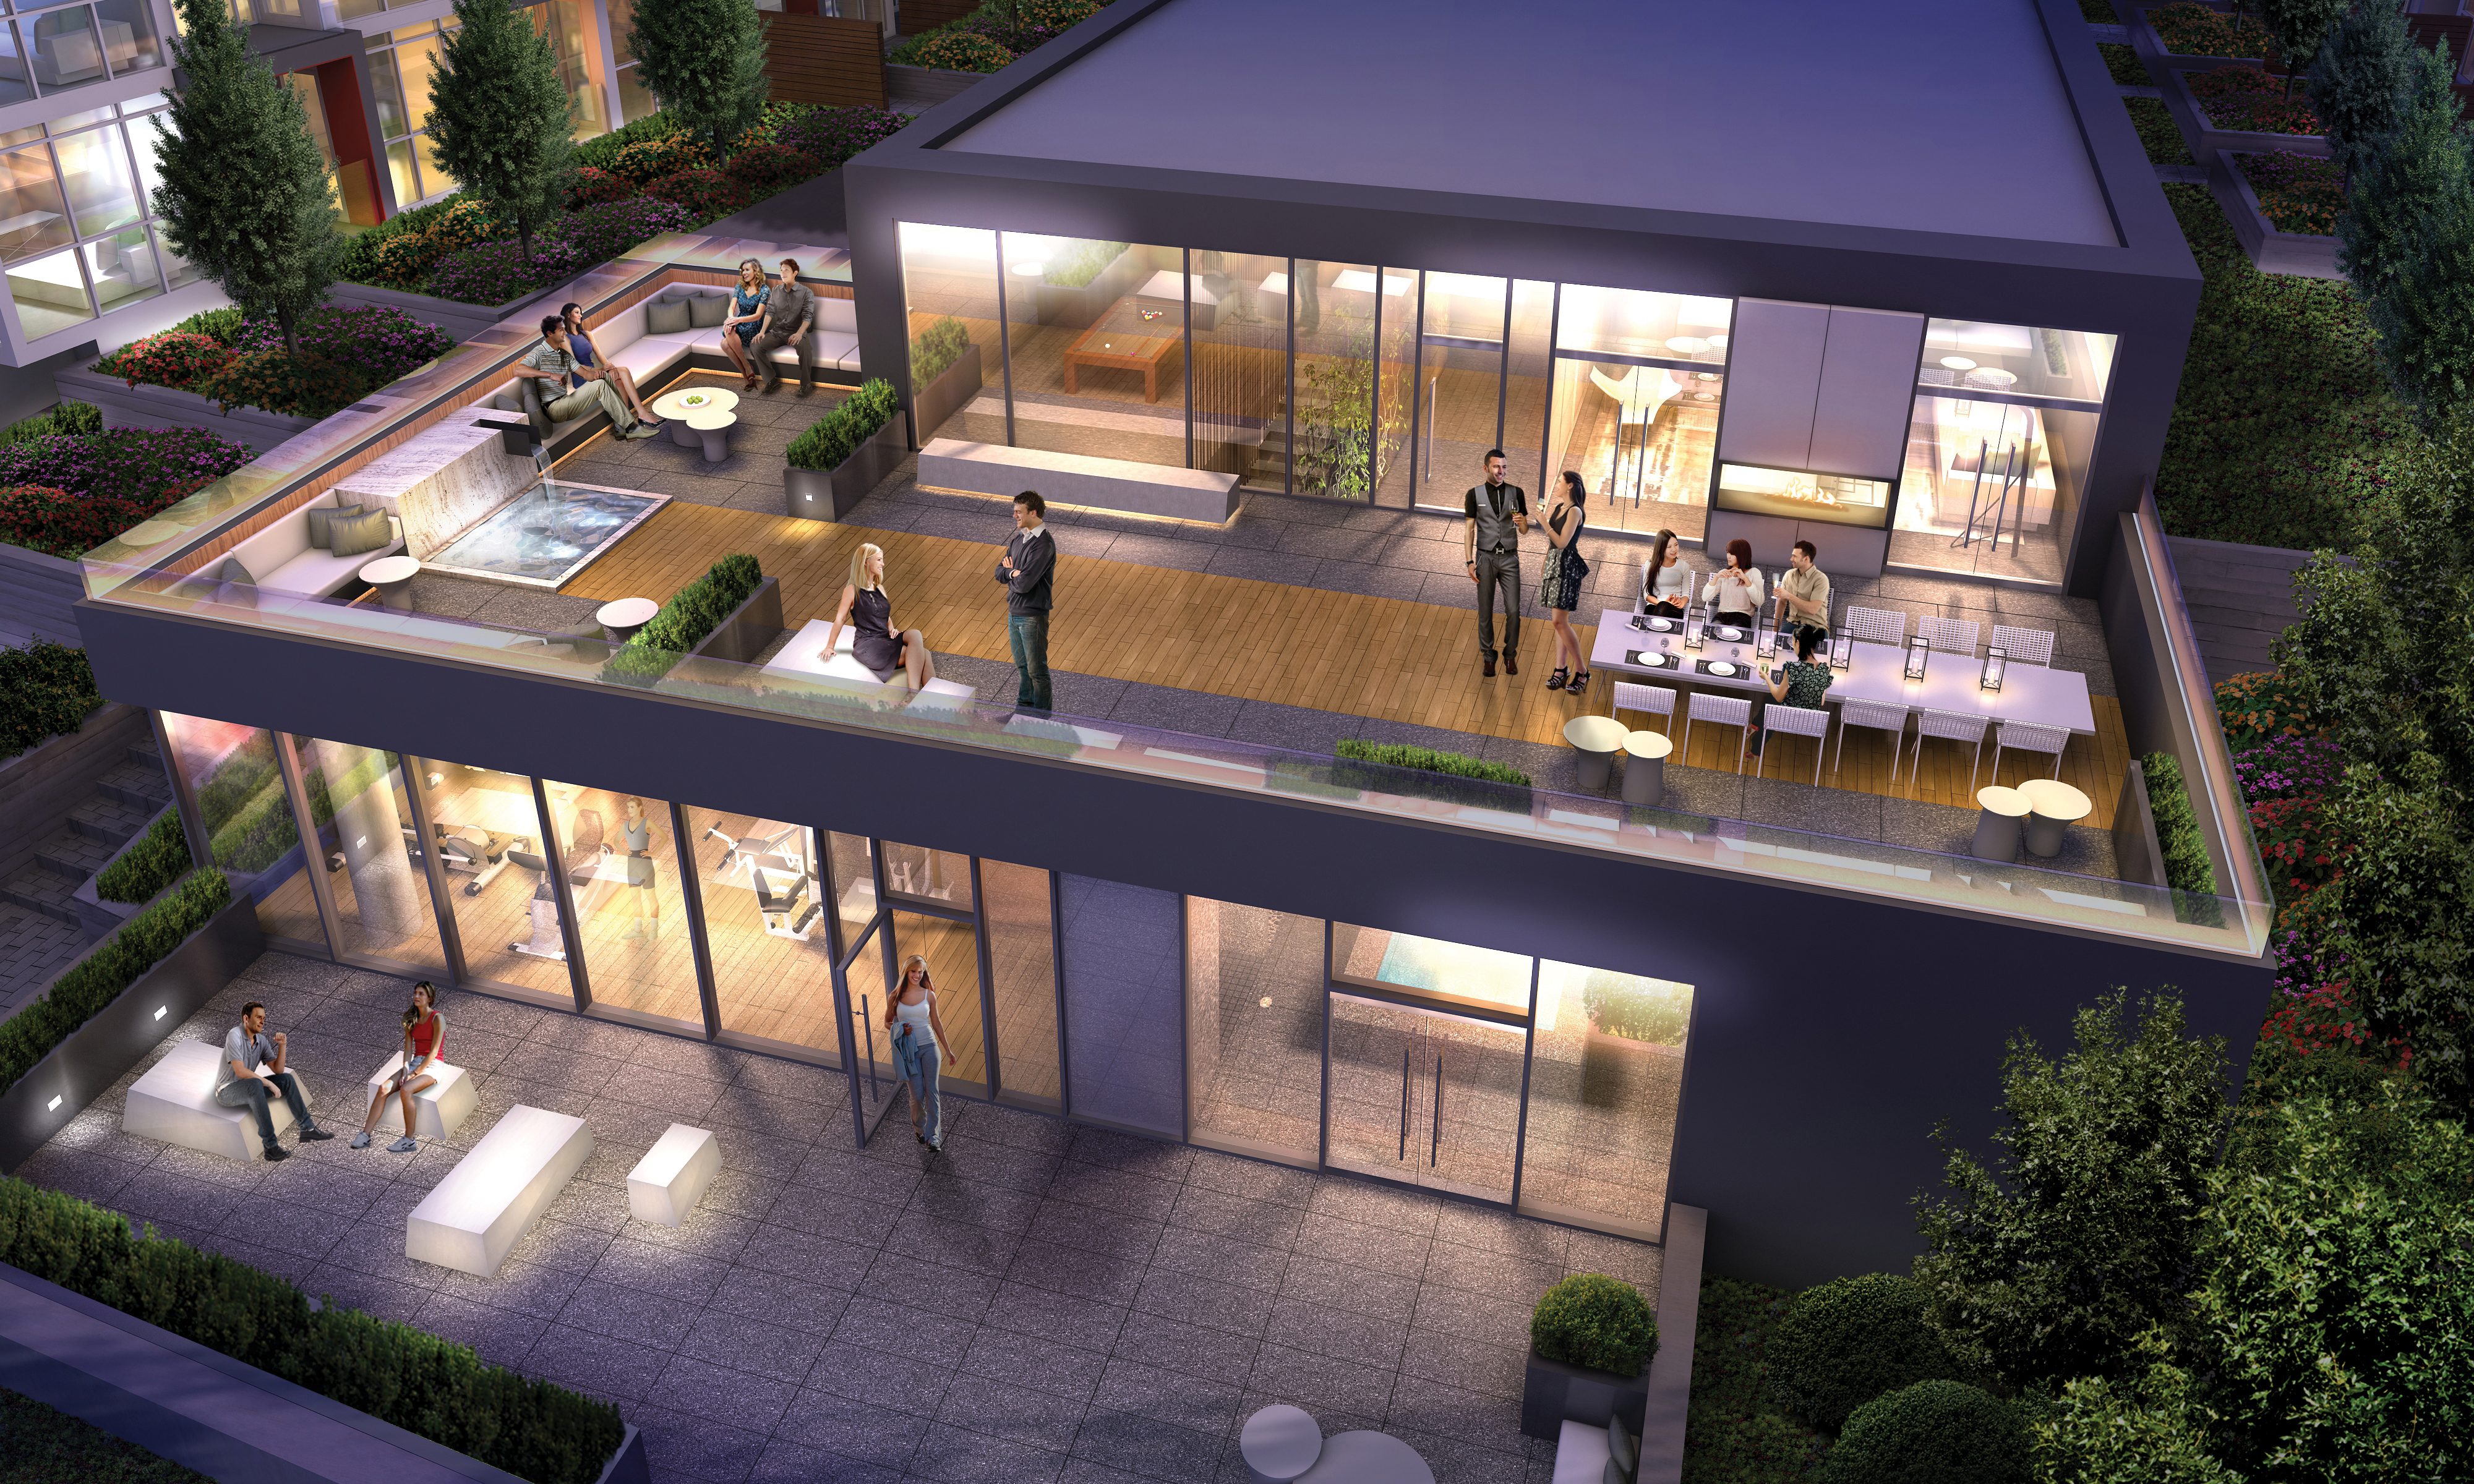 The 2-storey spa-inspired Wellness Centre lets you define downtime in dramatic style with an upper-level that allows you to host a get-together while the lower level allows you to escape from the hustle and bustle